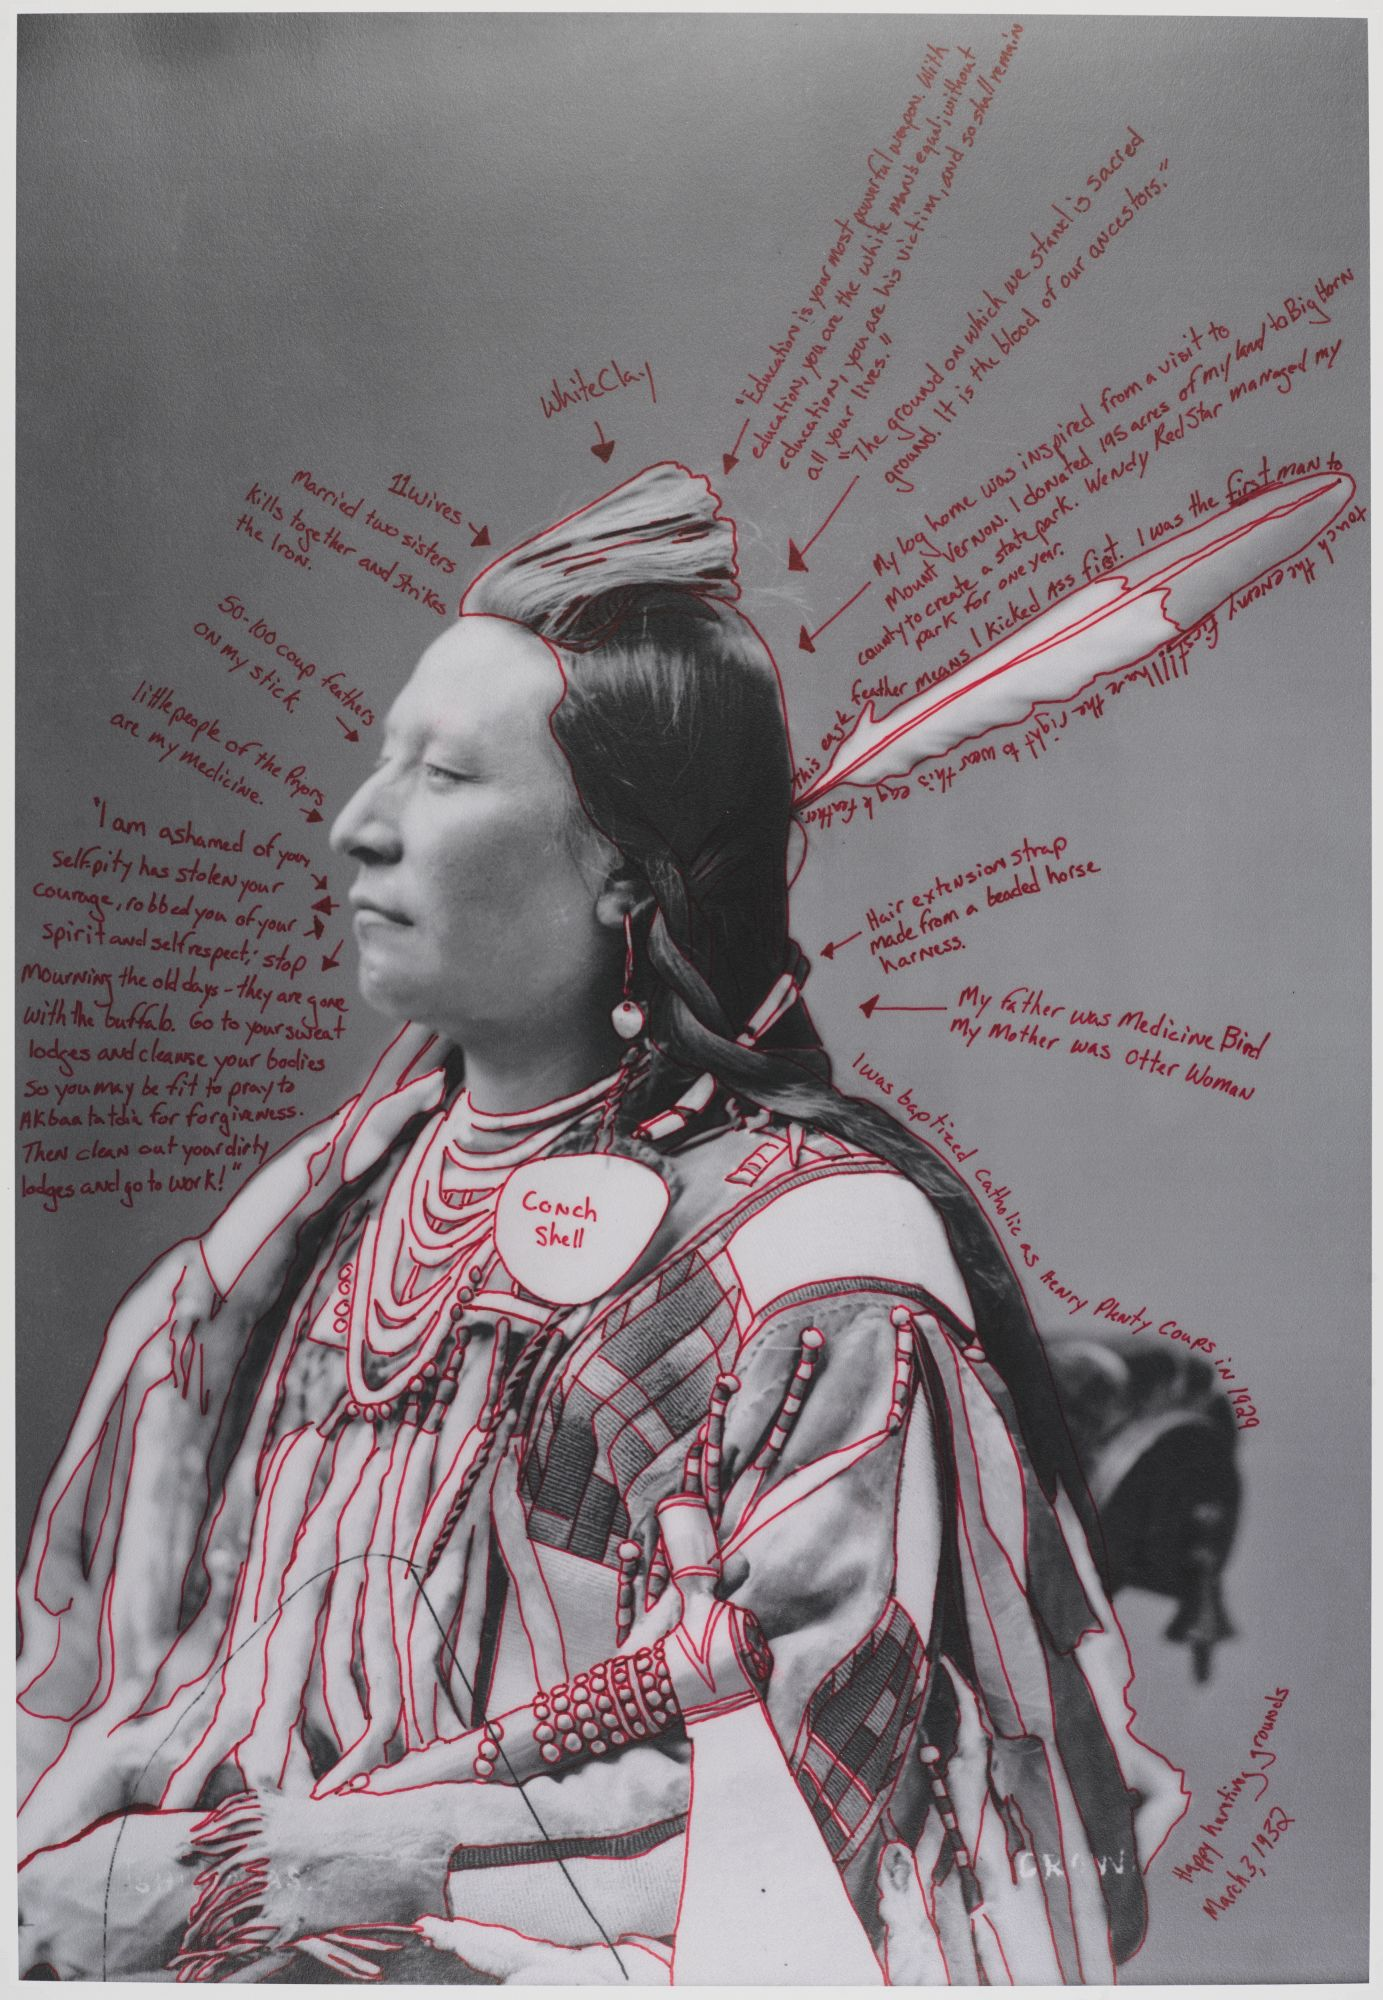 Wendy Red Star (Apsáalooke (Crow), born Billings, Montana, 1981).  Alaxchiiaahush / Many War Achievements / Plenty Coups , 2014, from the series  1880 Crow Peace Delegation . Pigment print on paper, from digitally reproduced and artist-manipulated photograph by C.M. (Charles Milton) Bell, National Anthropological Archives, Smithsonian Institution, 25 × 17 in. (63.5 × 43.2 cm). Brooklyn Museum; Elizabeth A. Sackler Center for Feminist Art, Gift of Loren G. Lipson, M.D., TL2018.8.5a–b. © Wendy Red Star. (Photo: Jonathan Dorado, Brooklyn Museum)